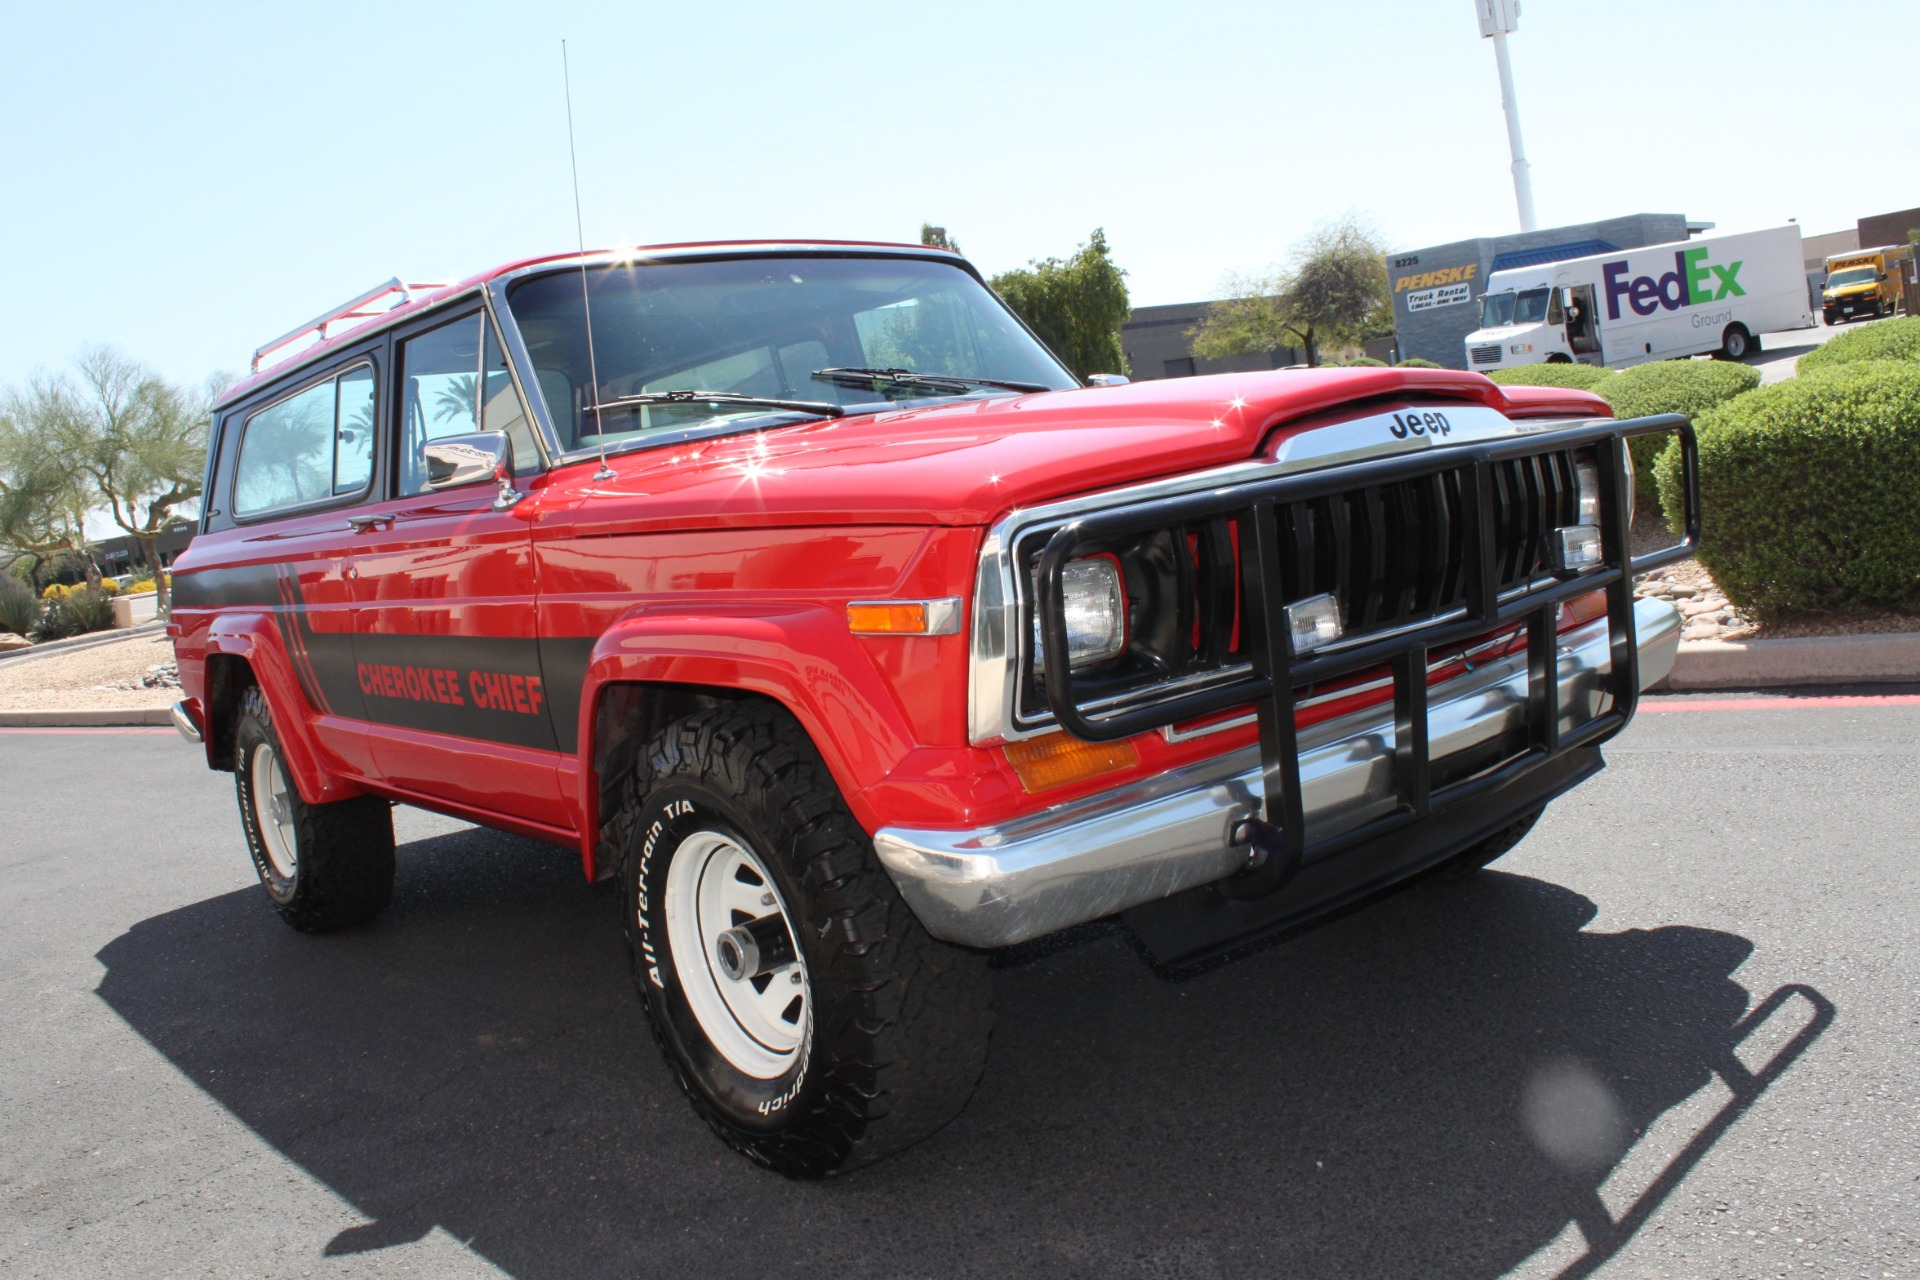 Used-1983-Jeep-Cherokee-Chief-4WD-Mercedes-Benz